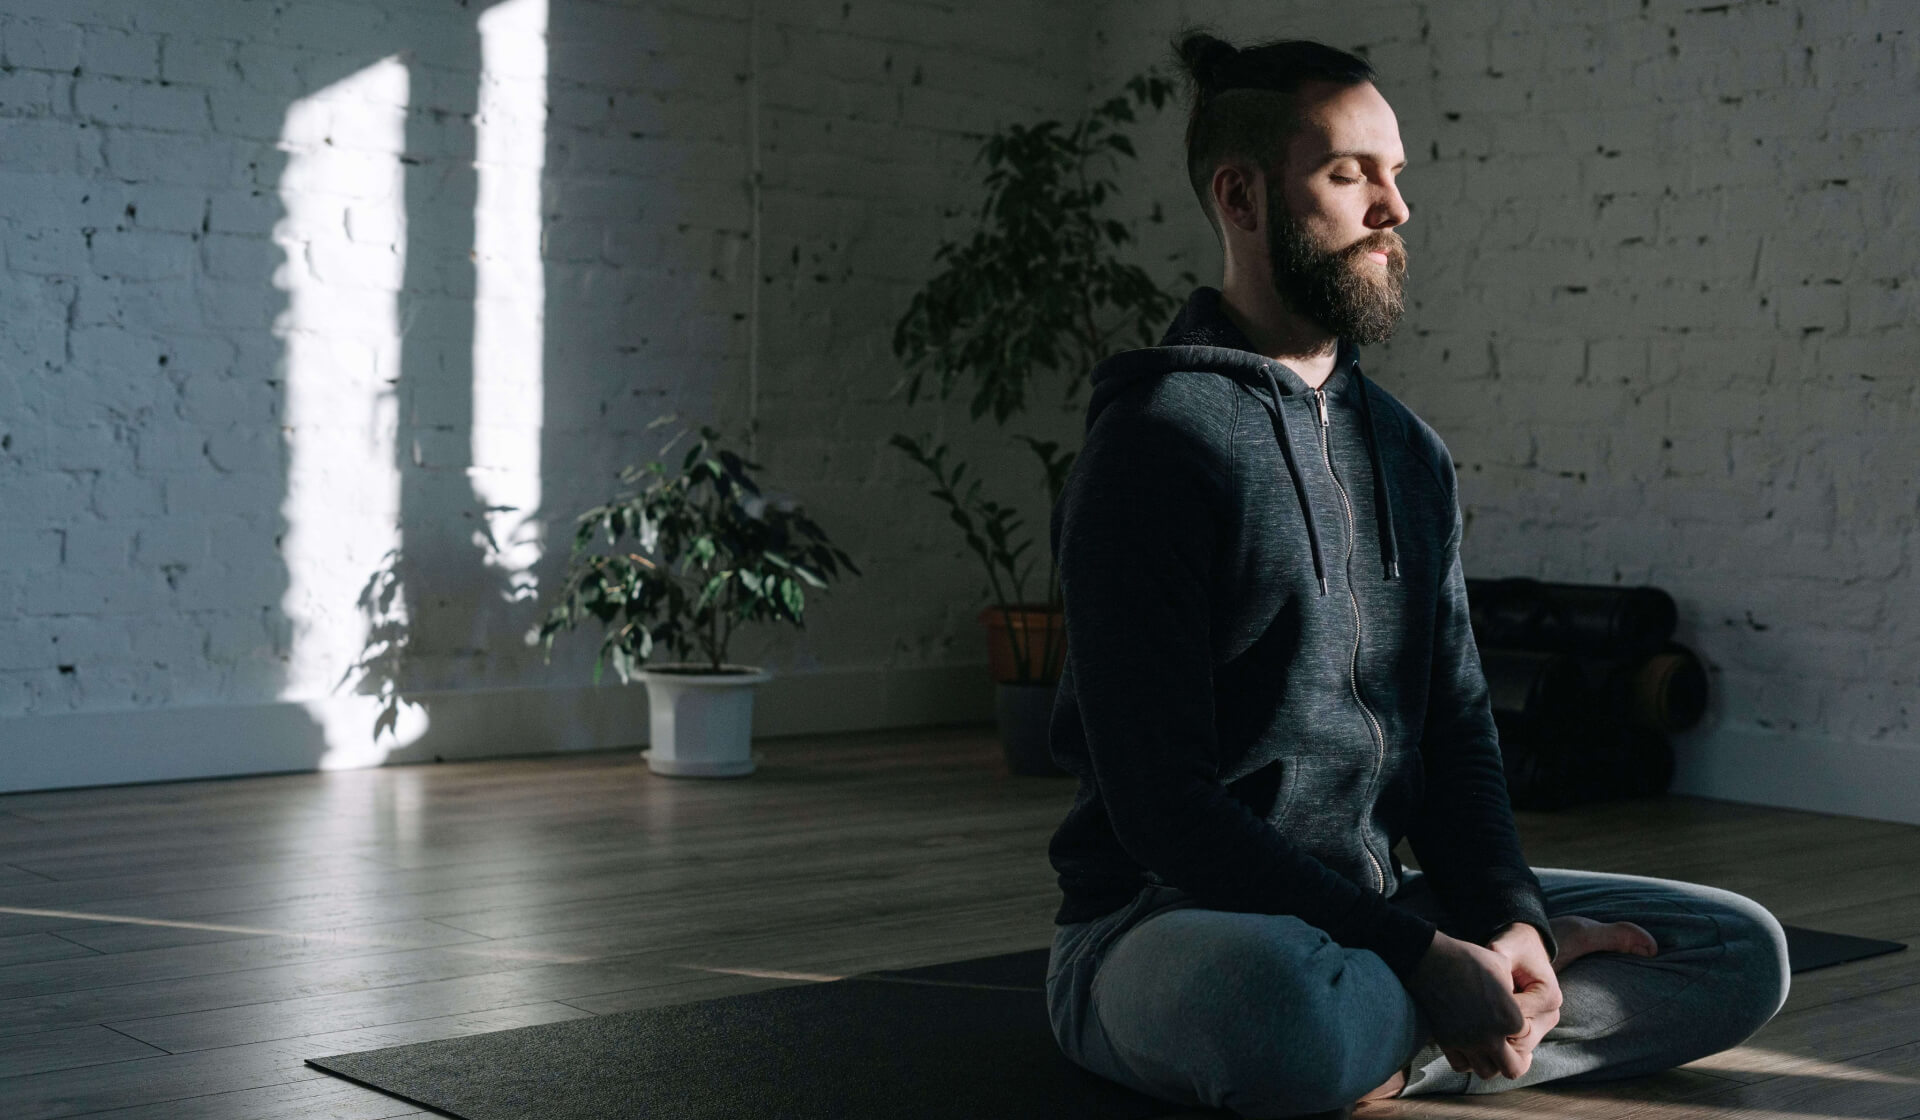 Man with a beard and bun in a hoodie and sweatpants sitting cross-legged on a yoga mat in a dark room with his eyes closed meditating